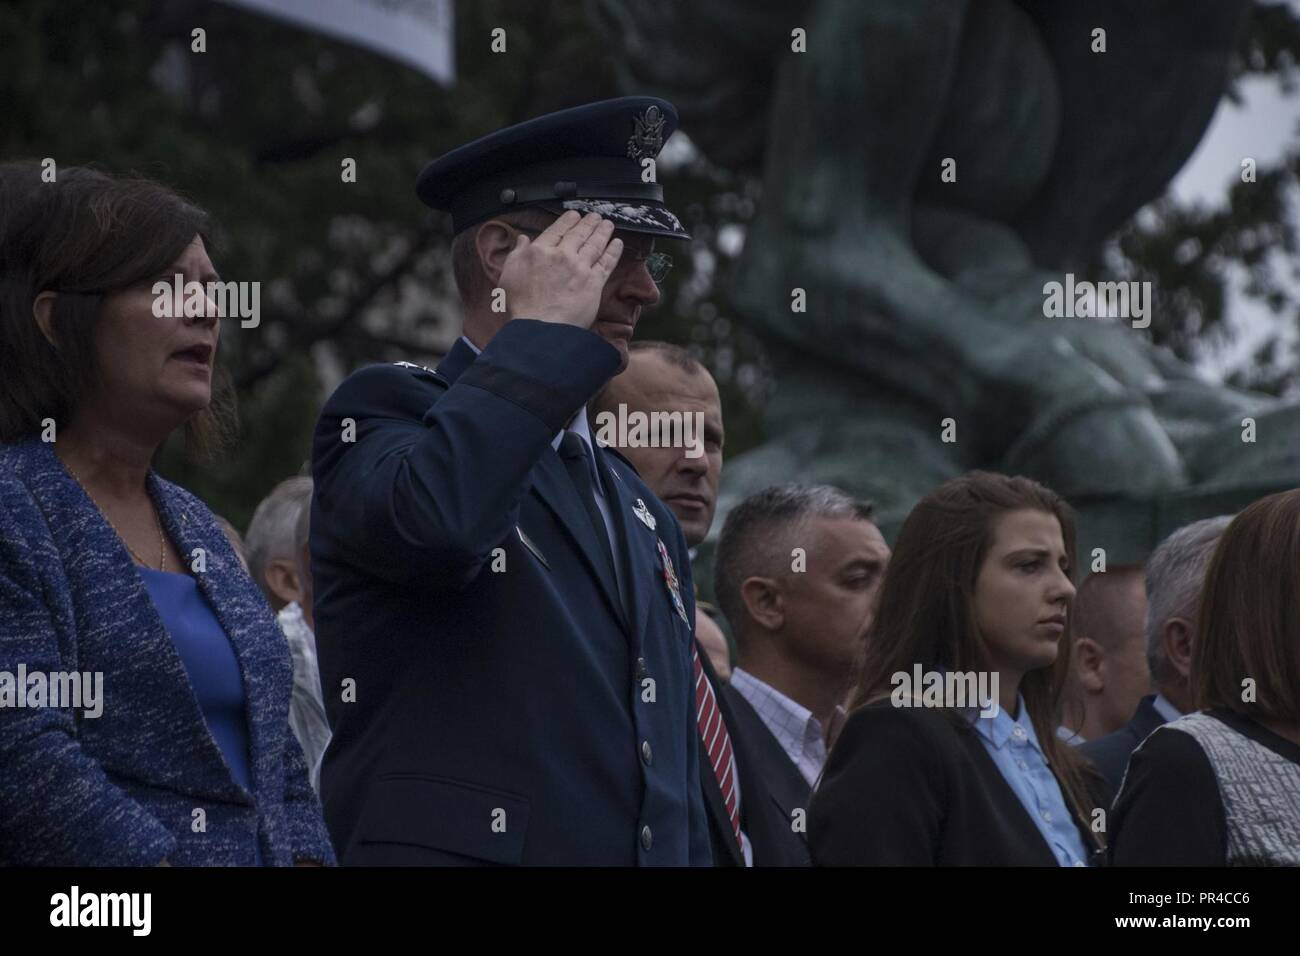 Officer cadets from the Military Academy take part in a graduation ceremony in front of the National Assembly of the Republic of Serbia Sept. 8, 2018, in Belgrade, Serbia. An Ohio National Guard delegation, led by Maj. Gen. Mark E. Bartman (saluting), Ohio adjutant general, was in Serbia for CAPSTONE 2018, the annual culmination of the year's events to highlight the Serbian-Ohio National Guard pairing through the Department of Defense State Partnership Program. Also on the trip was South Euclid, Ohio Mayor Georgine Welo (left), who was there to sign a Sister Cities International memorandum of  - Stock Image